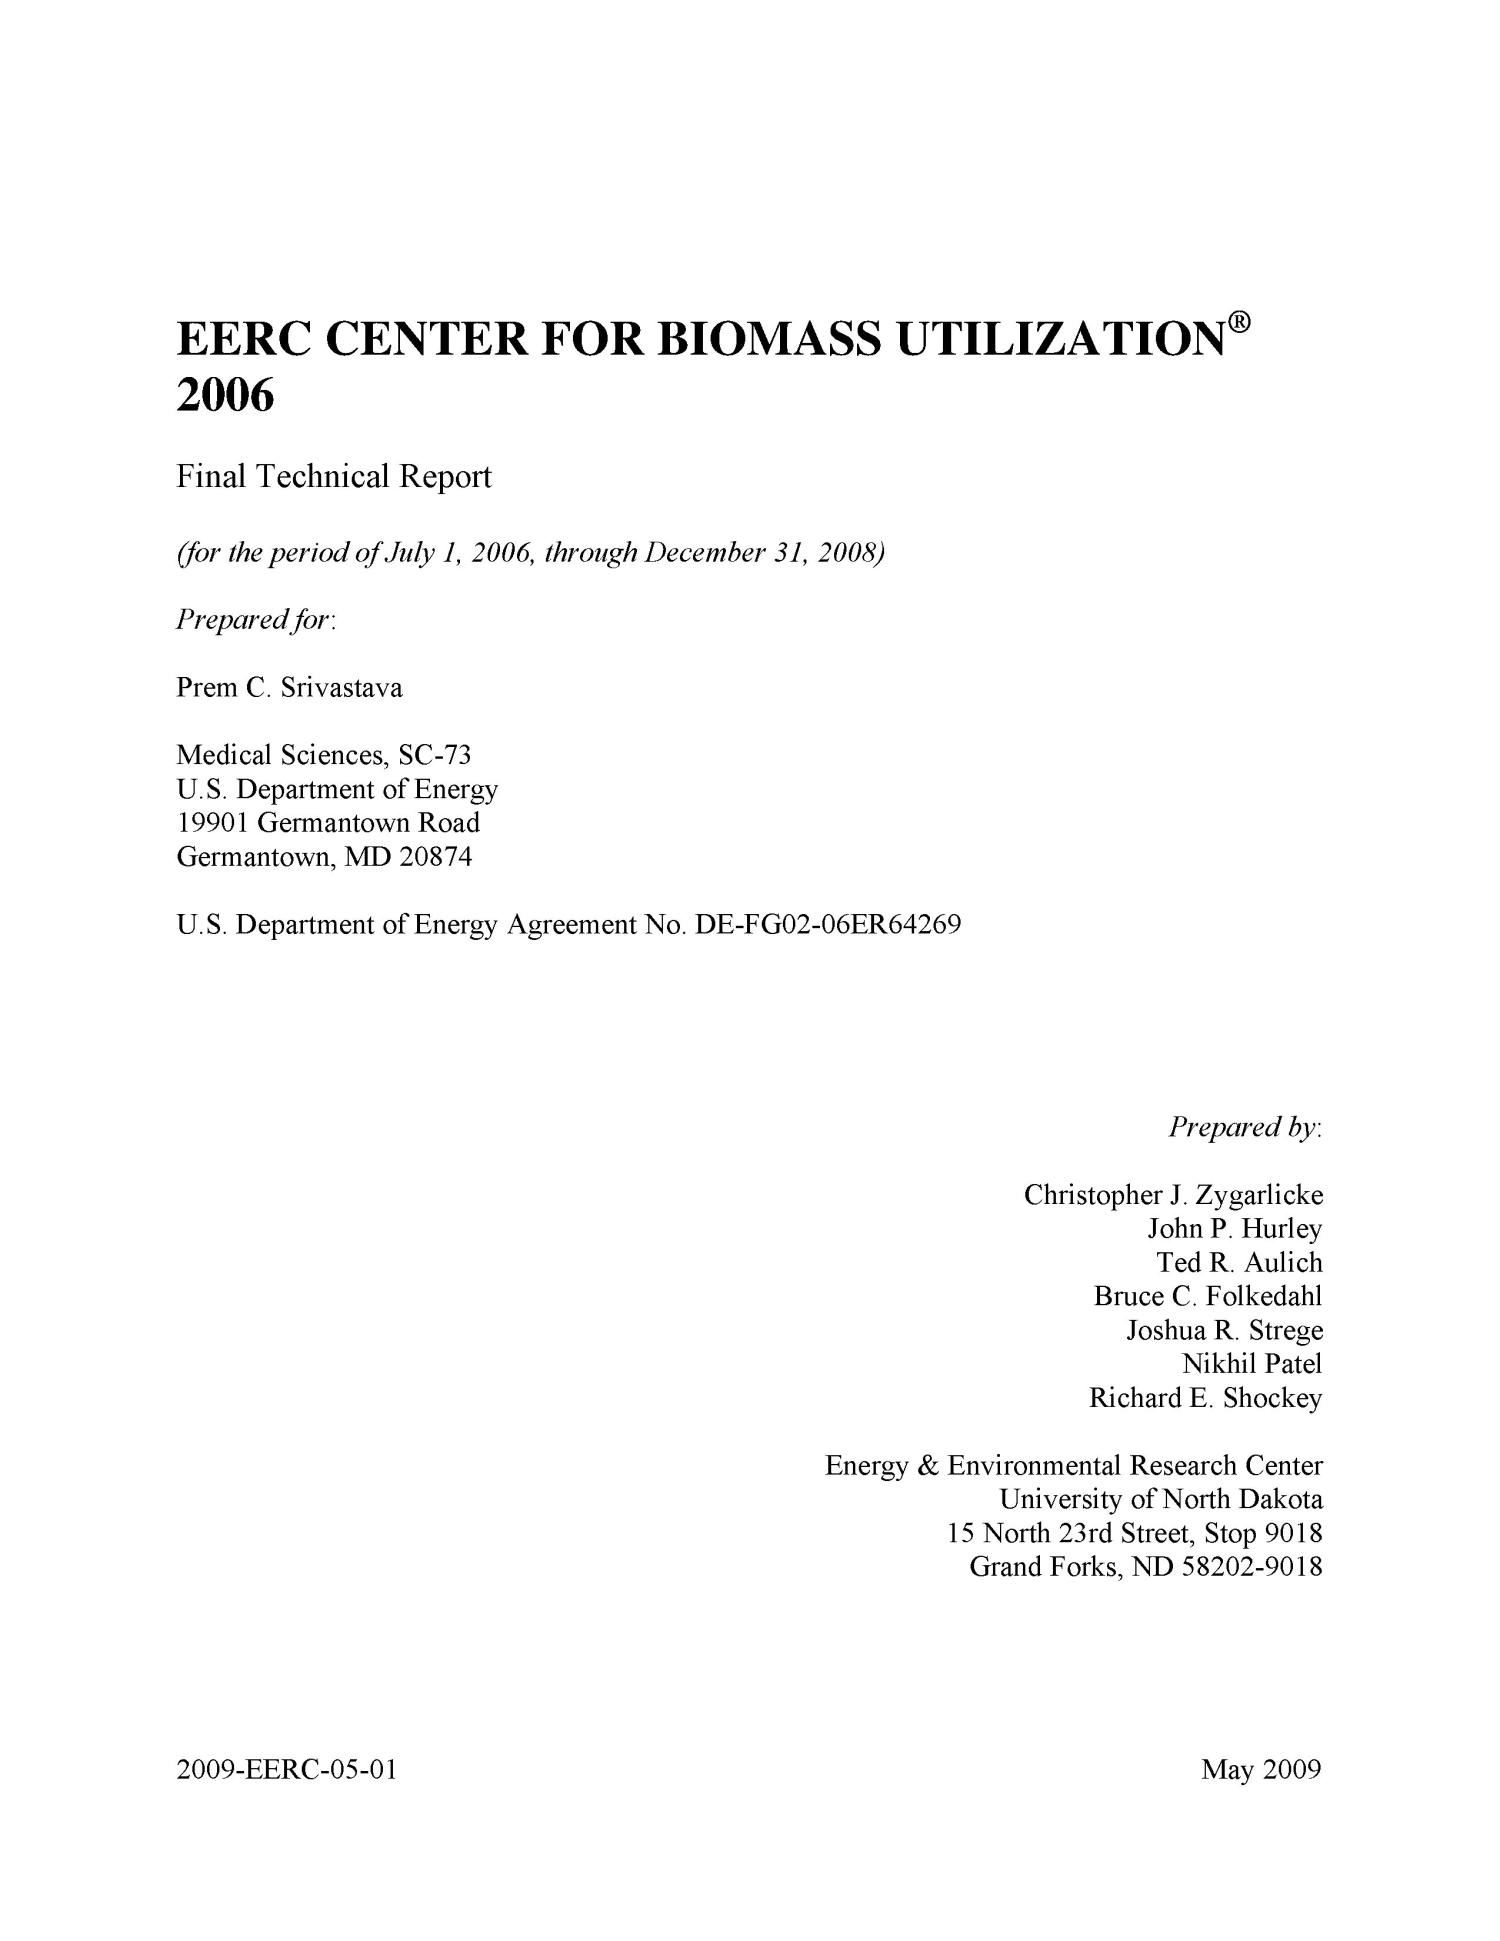 EERC Center for Biomass Utilization 2006                                                                                                      [Sequence #]: 2 of 240